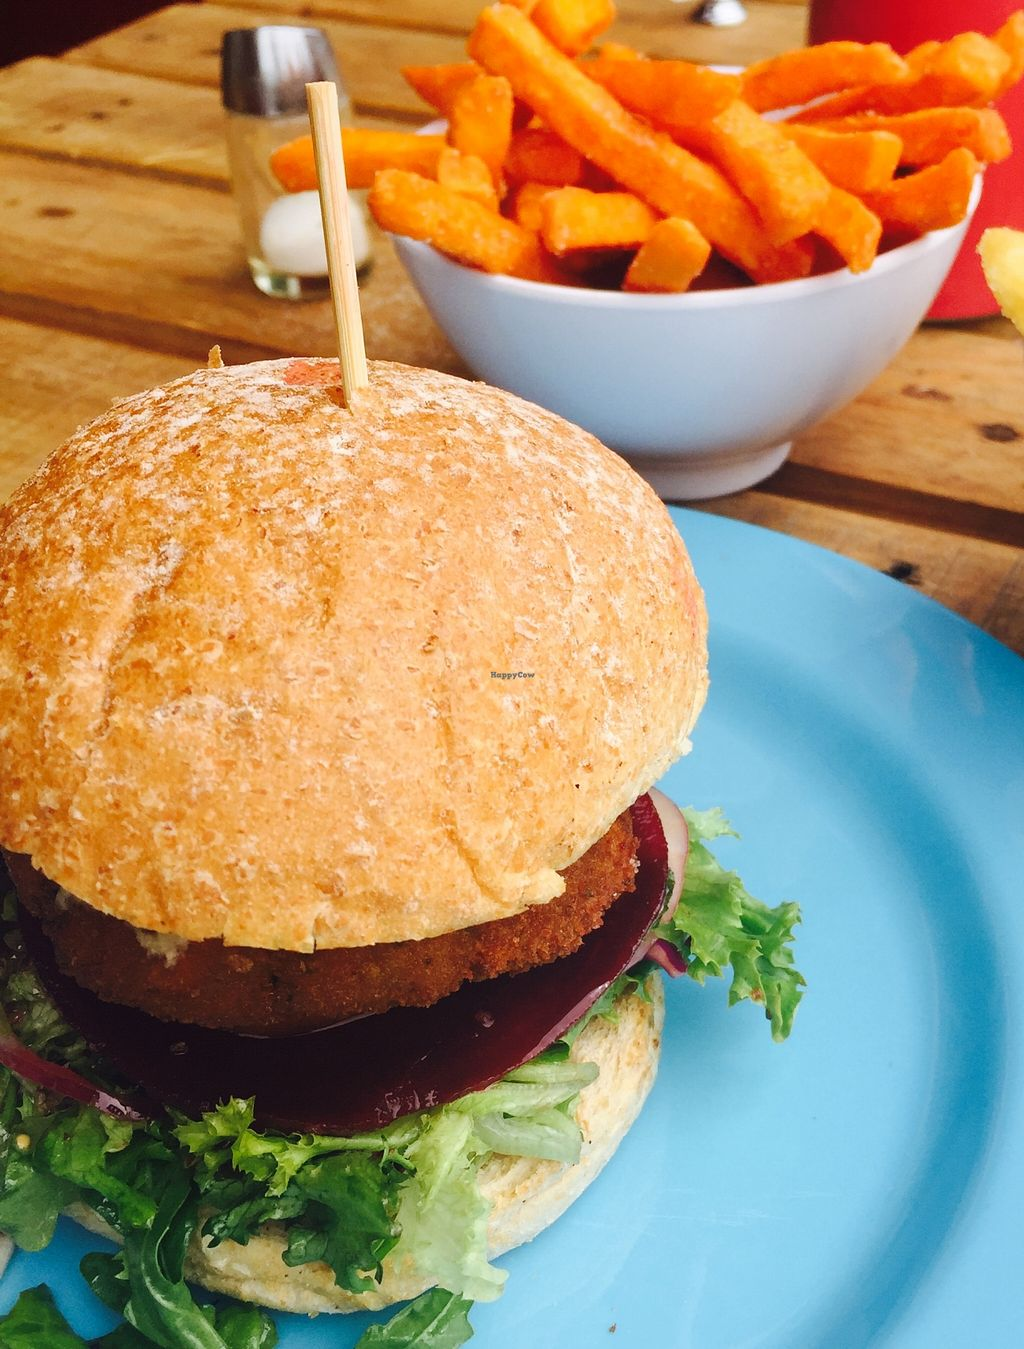 """Photo of Island Burger Bar  by <a href=""""/members/profile/karlaess"""">karlaess</a> <br/>Garden burger and sweet potato fries <br/> January 9, 2016  - <a href='/contact/abuse/image/67924/131761'>Report</a>"""